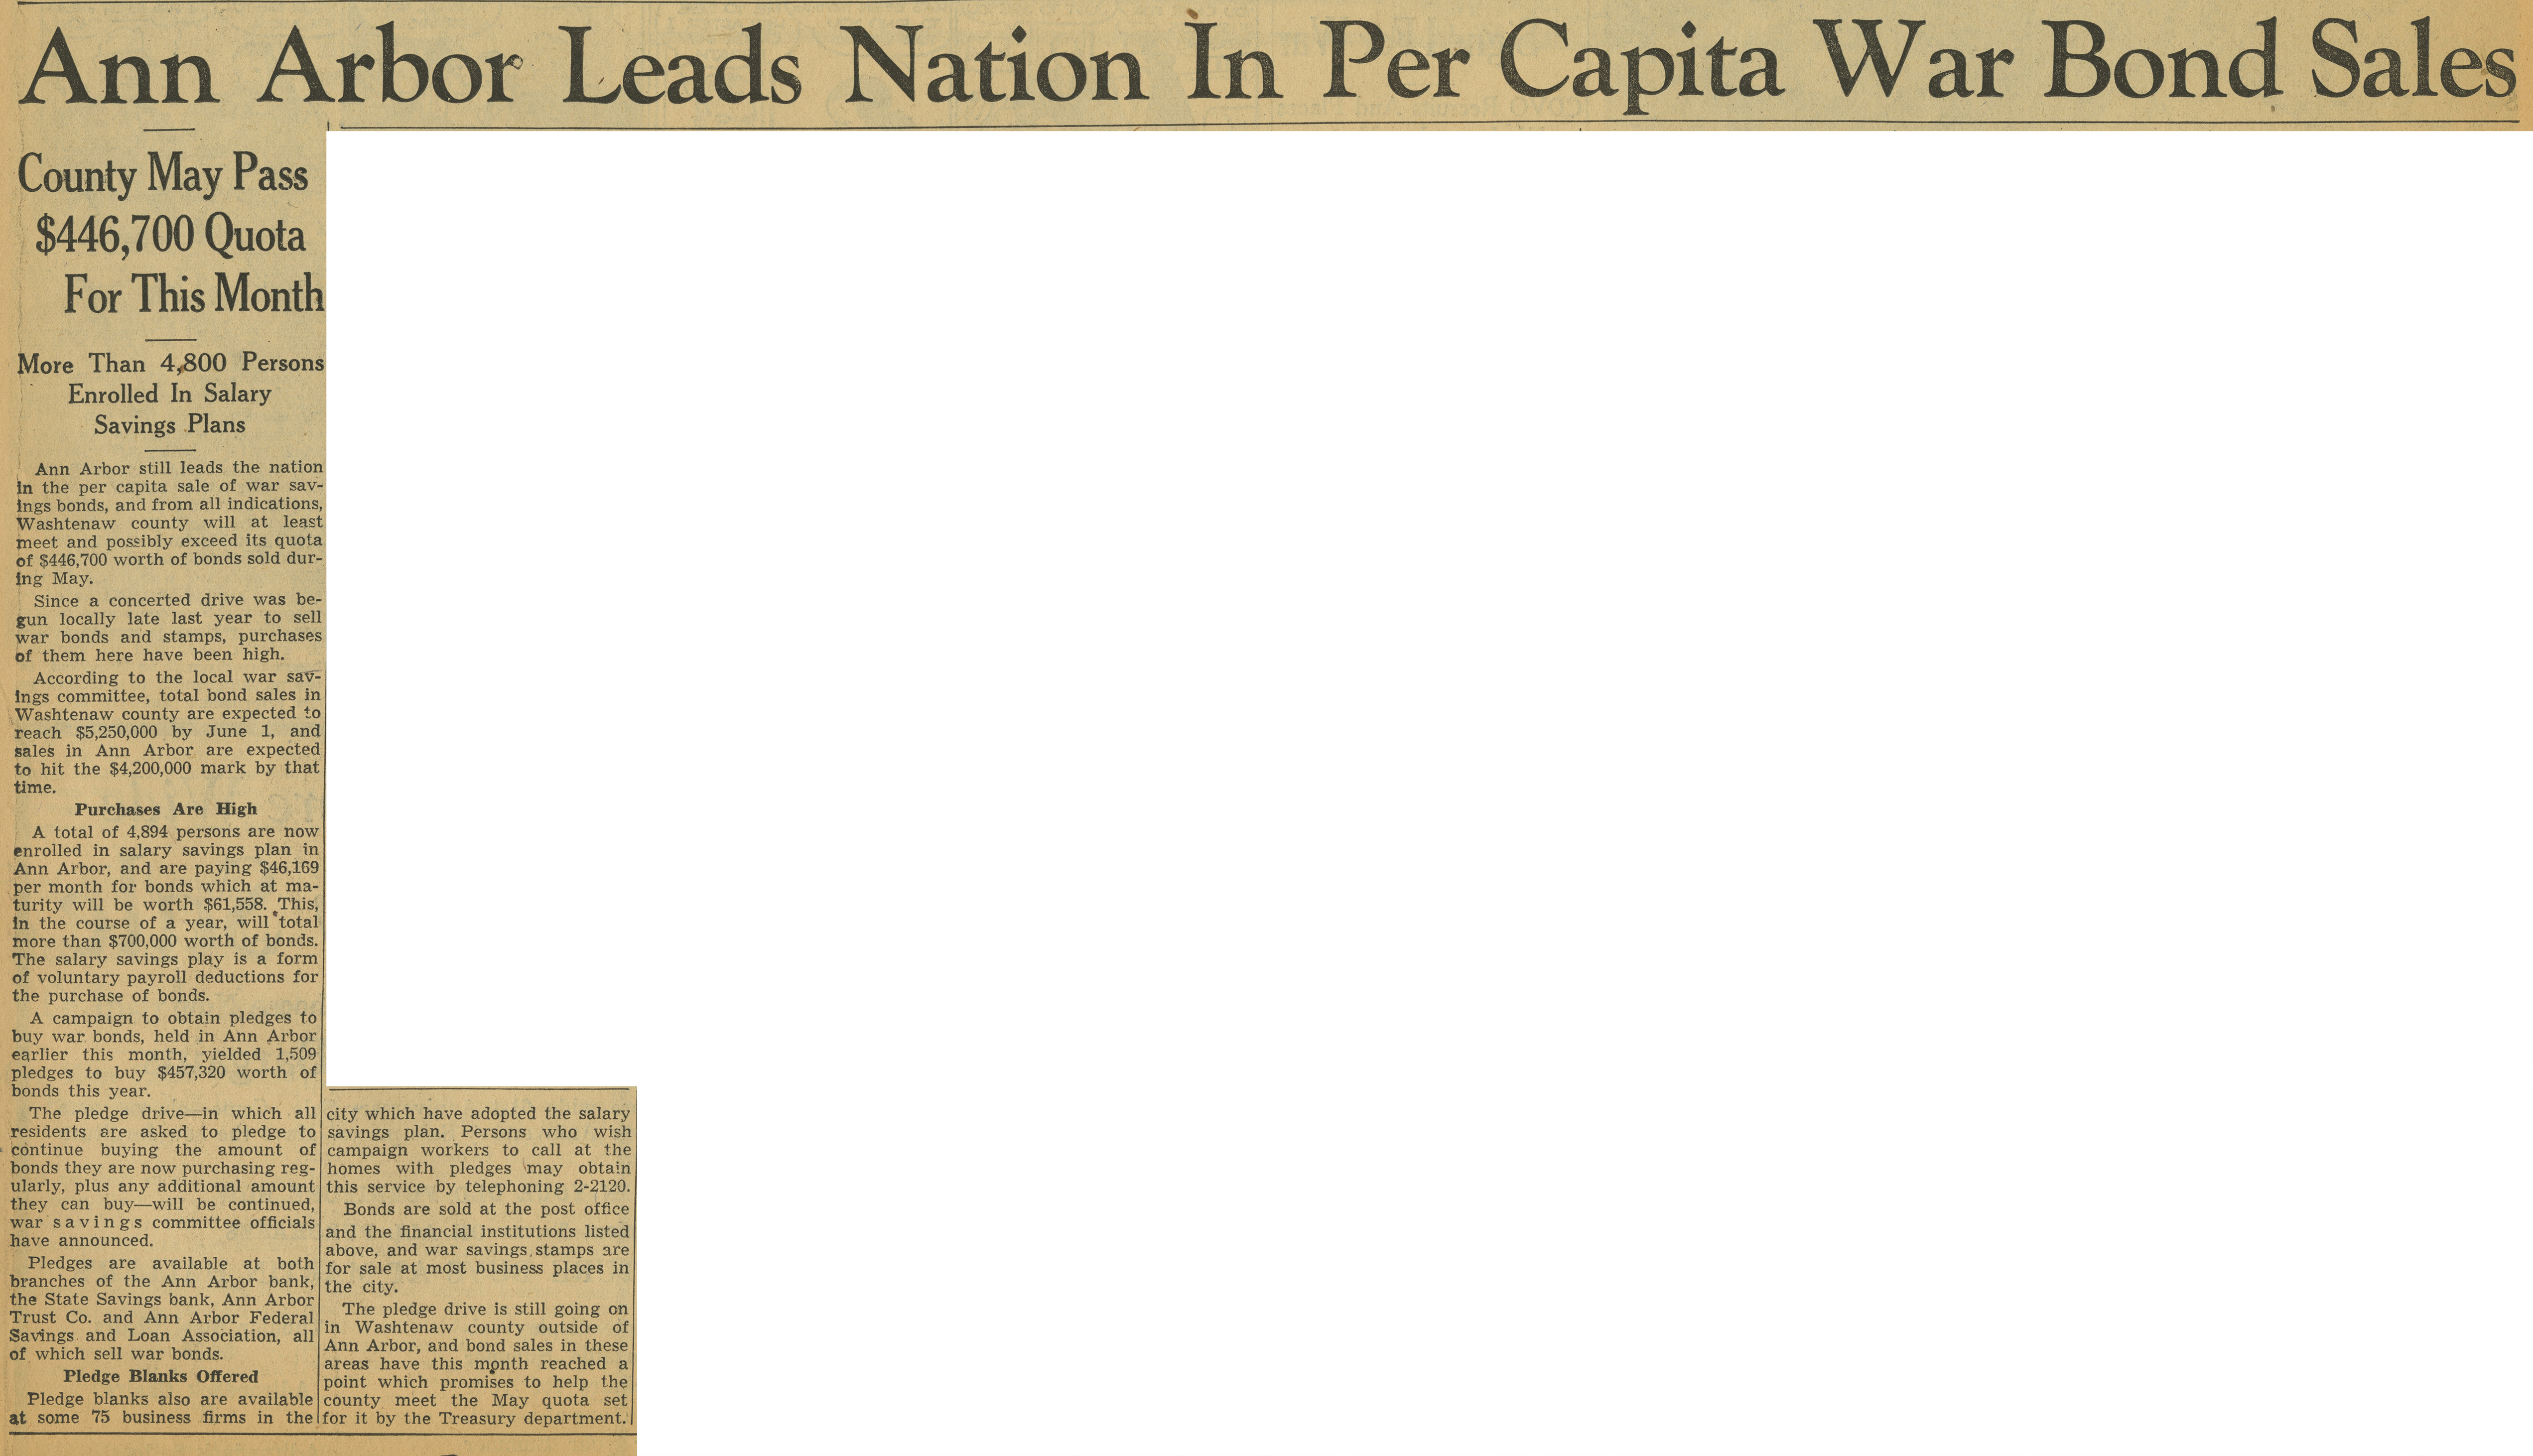 Ann Arbor Leads Nation In Per Capita War Bond Sales image